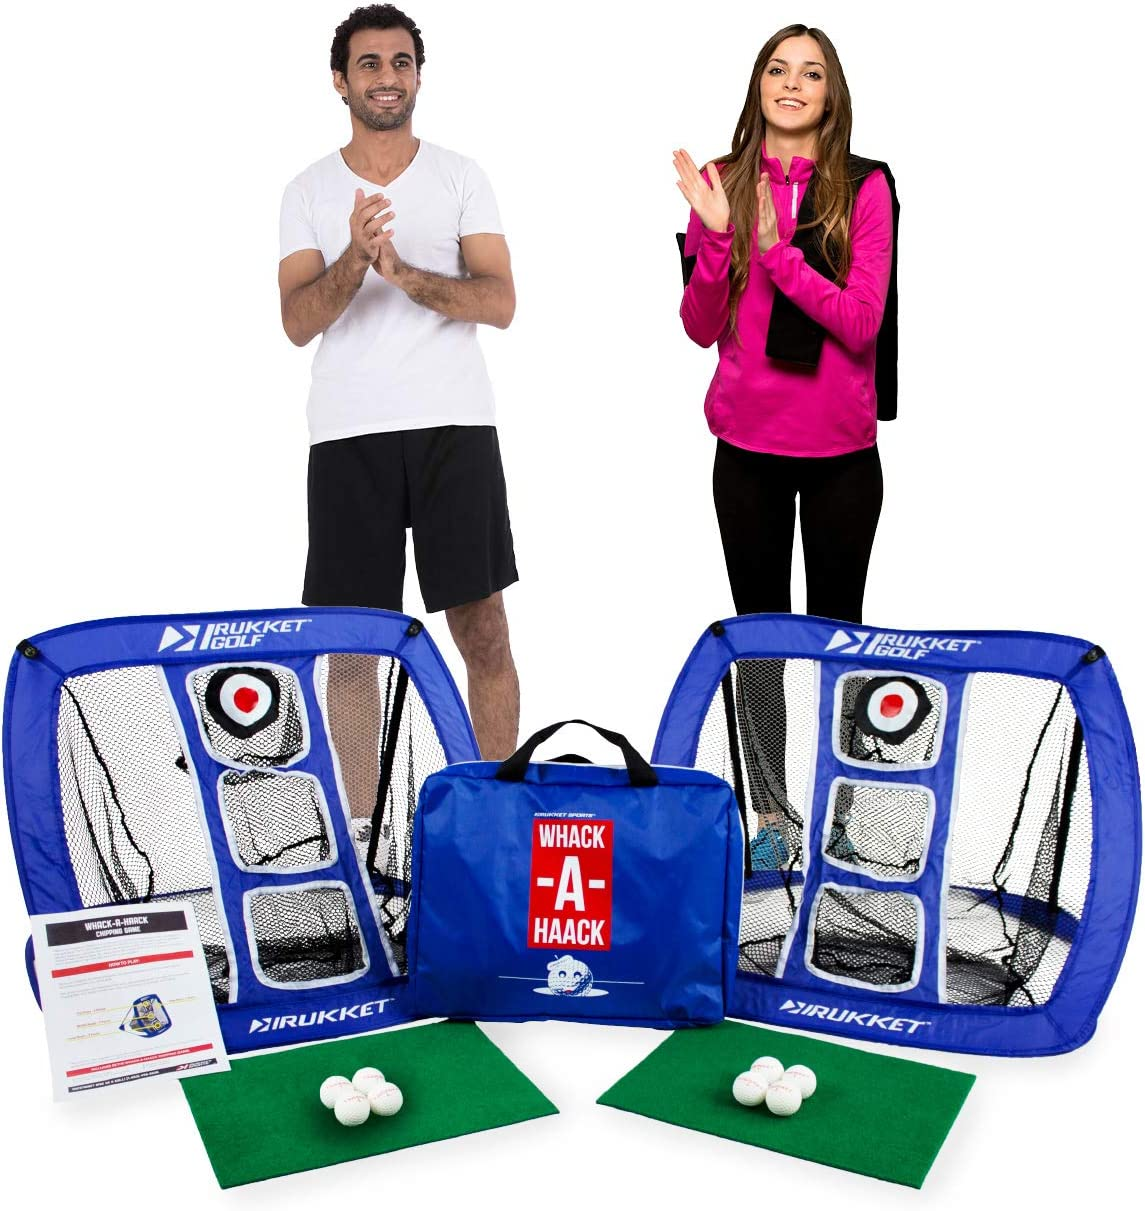 Rukket Sports Golf Chipping Net Cornhole Game Chip Outdoor Indoor at Beach, Backyard or Tailgate Golfing Practice Games for Adults and Kids